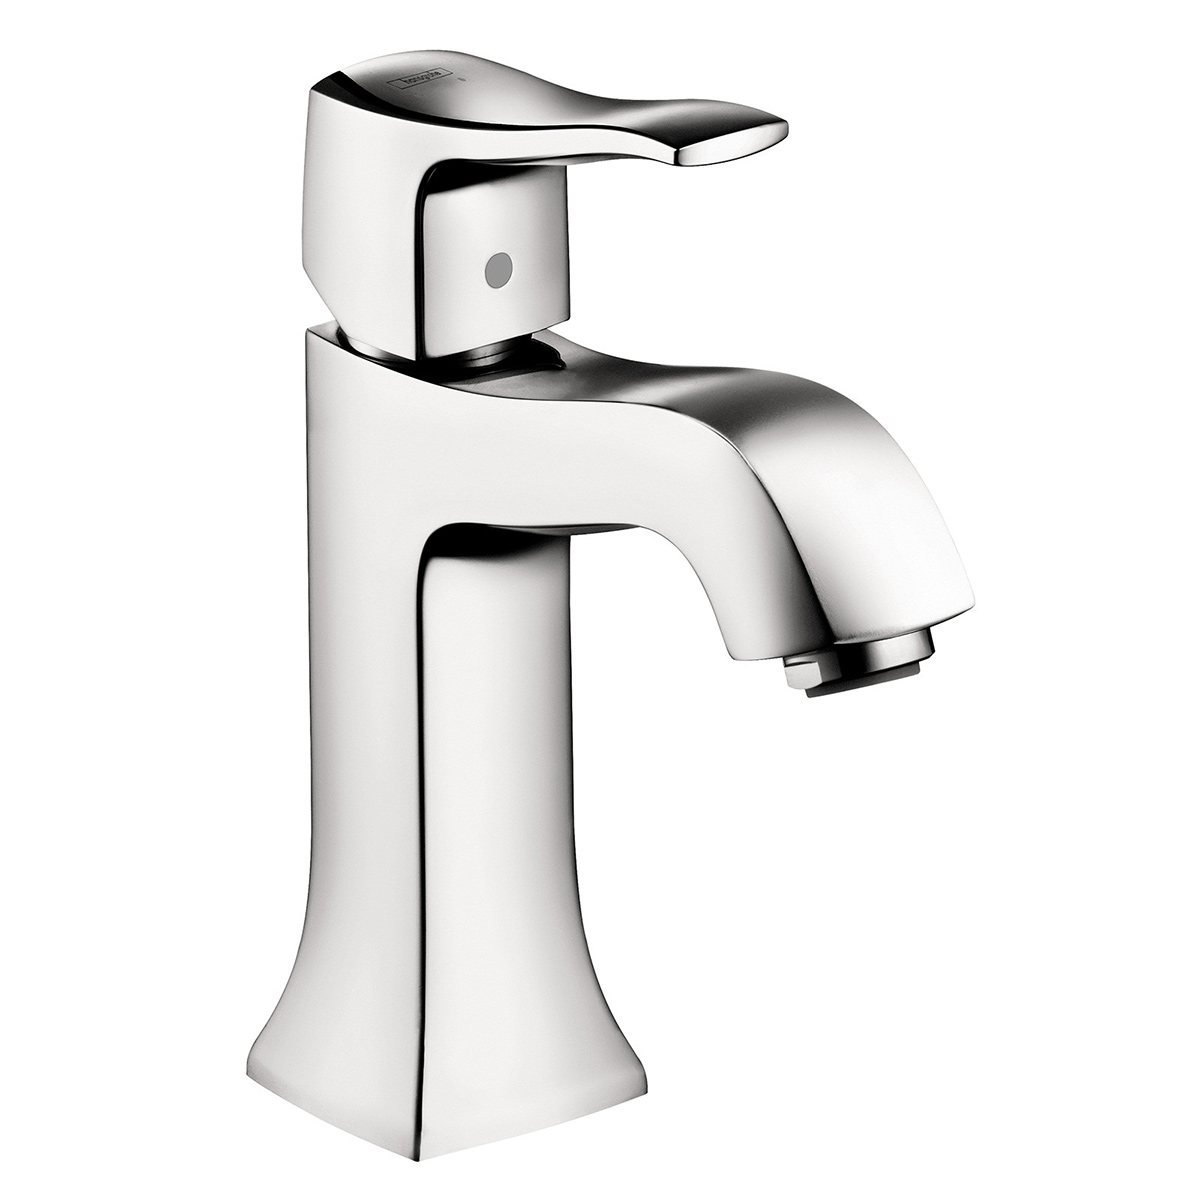 faucet pin bathroom axor with hansgrohe uno handles faucets chrome knob widespread